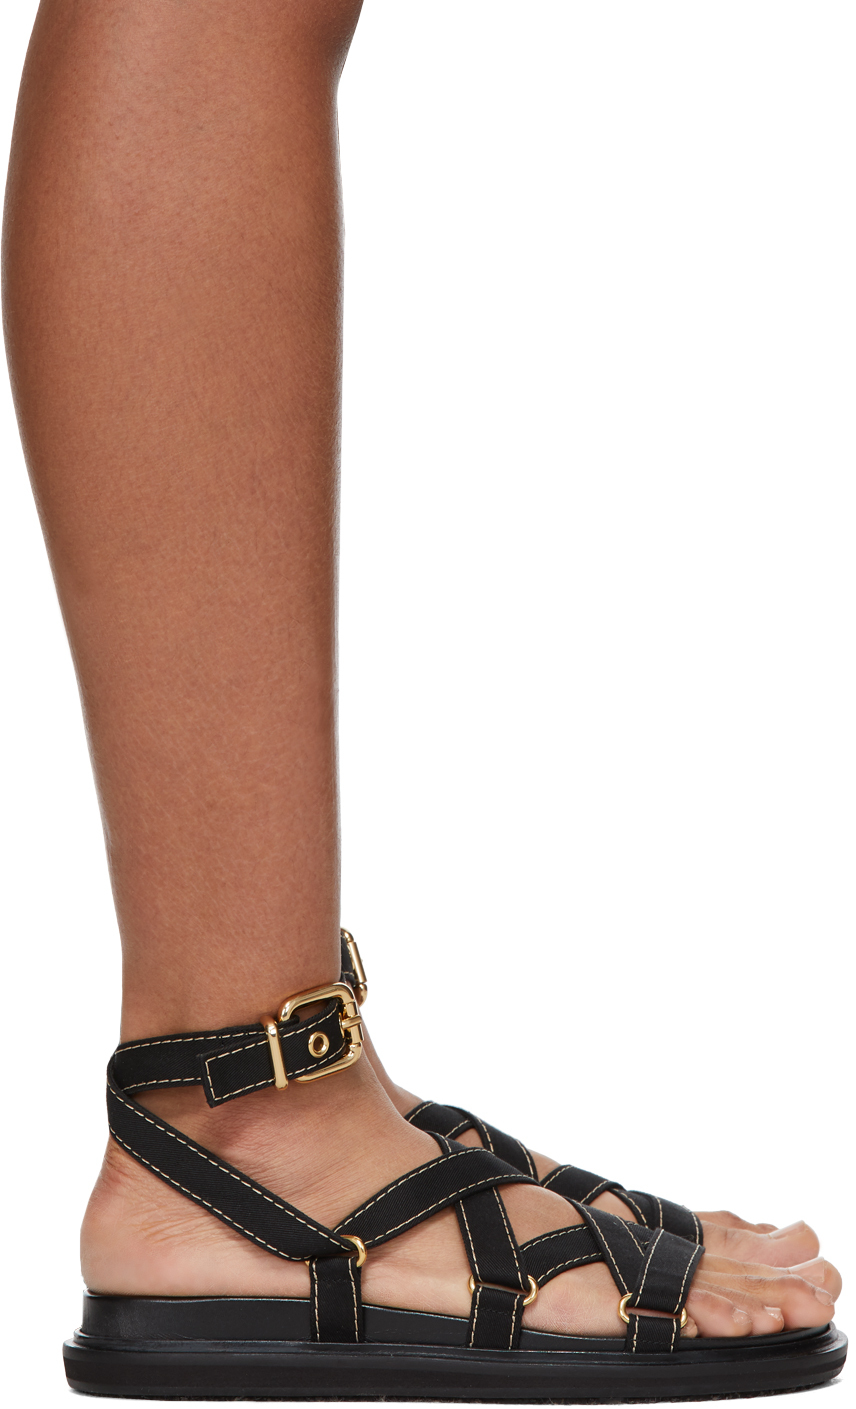 Black Strappy Flat Sandals by Marni on Sale